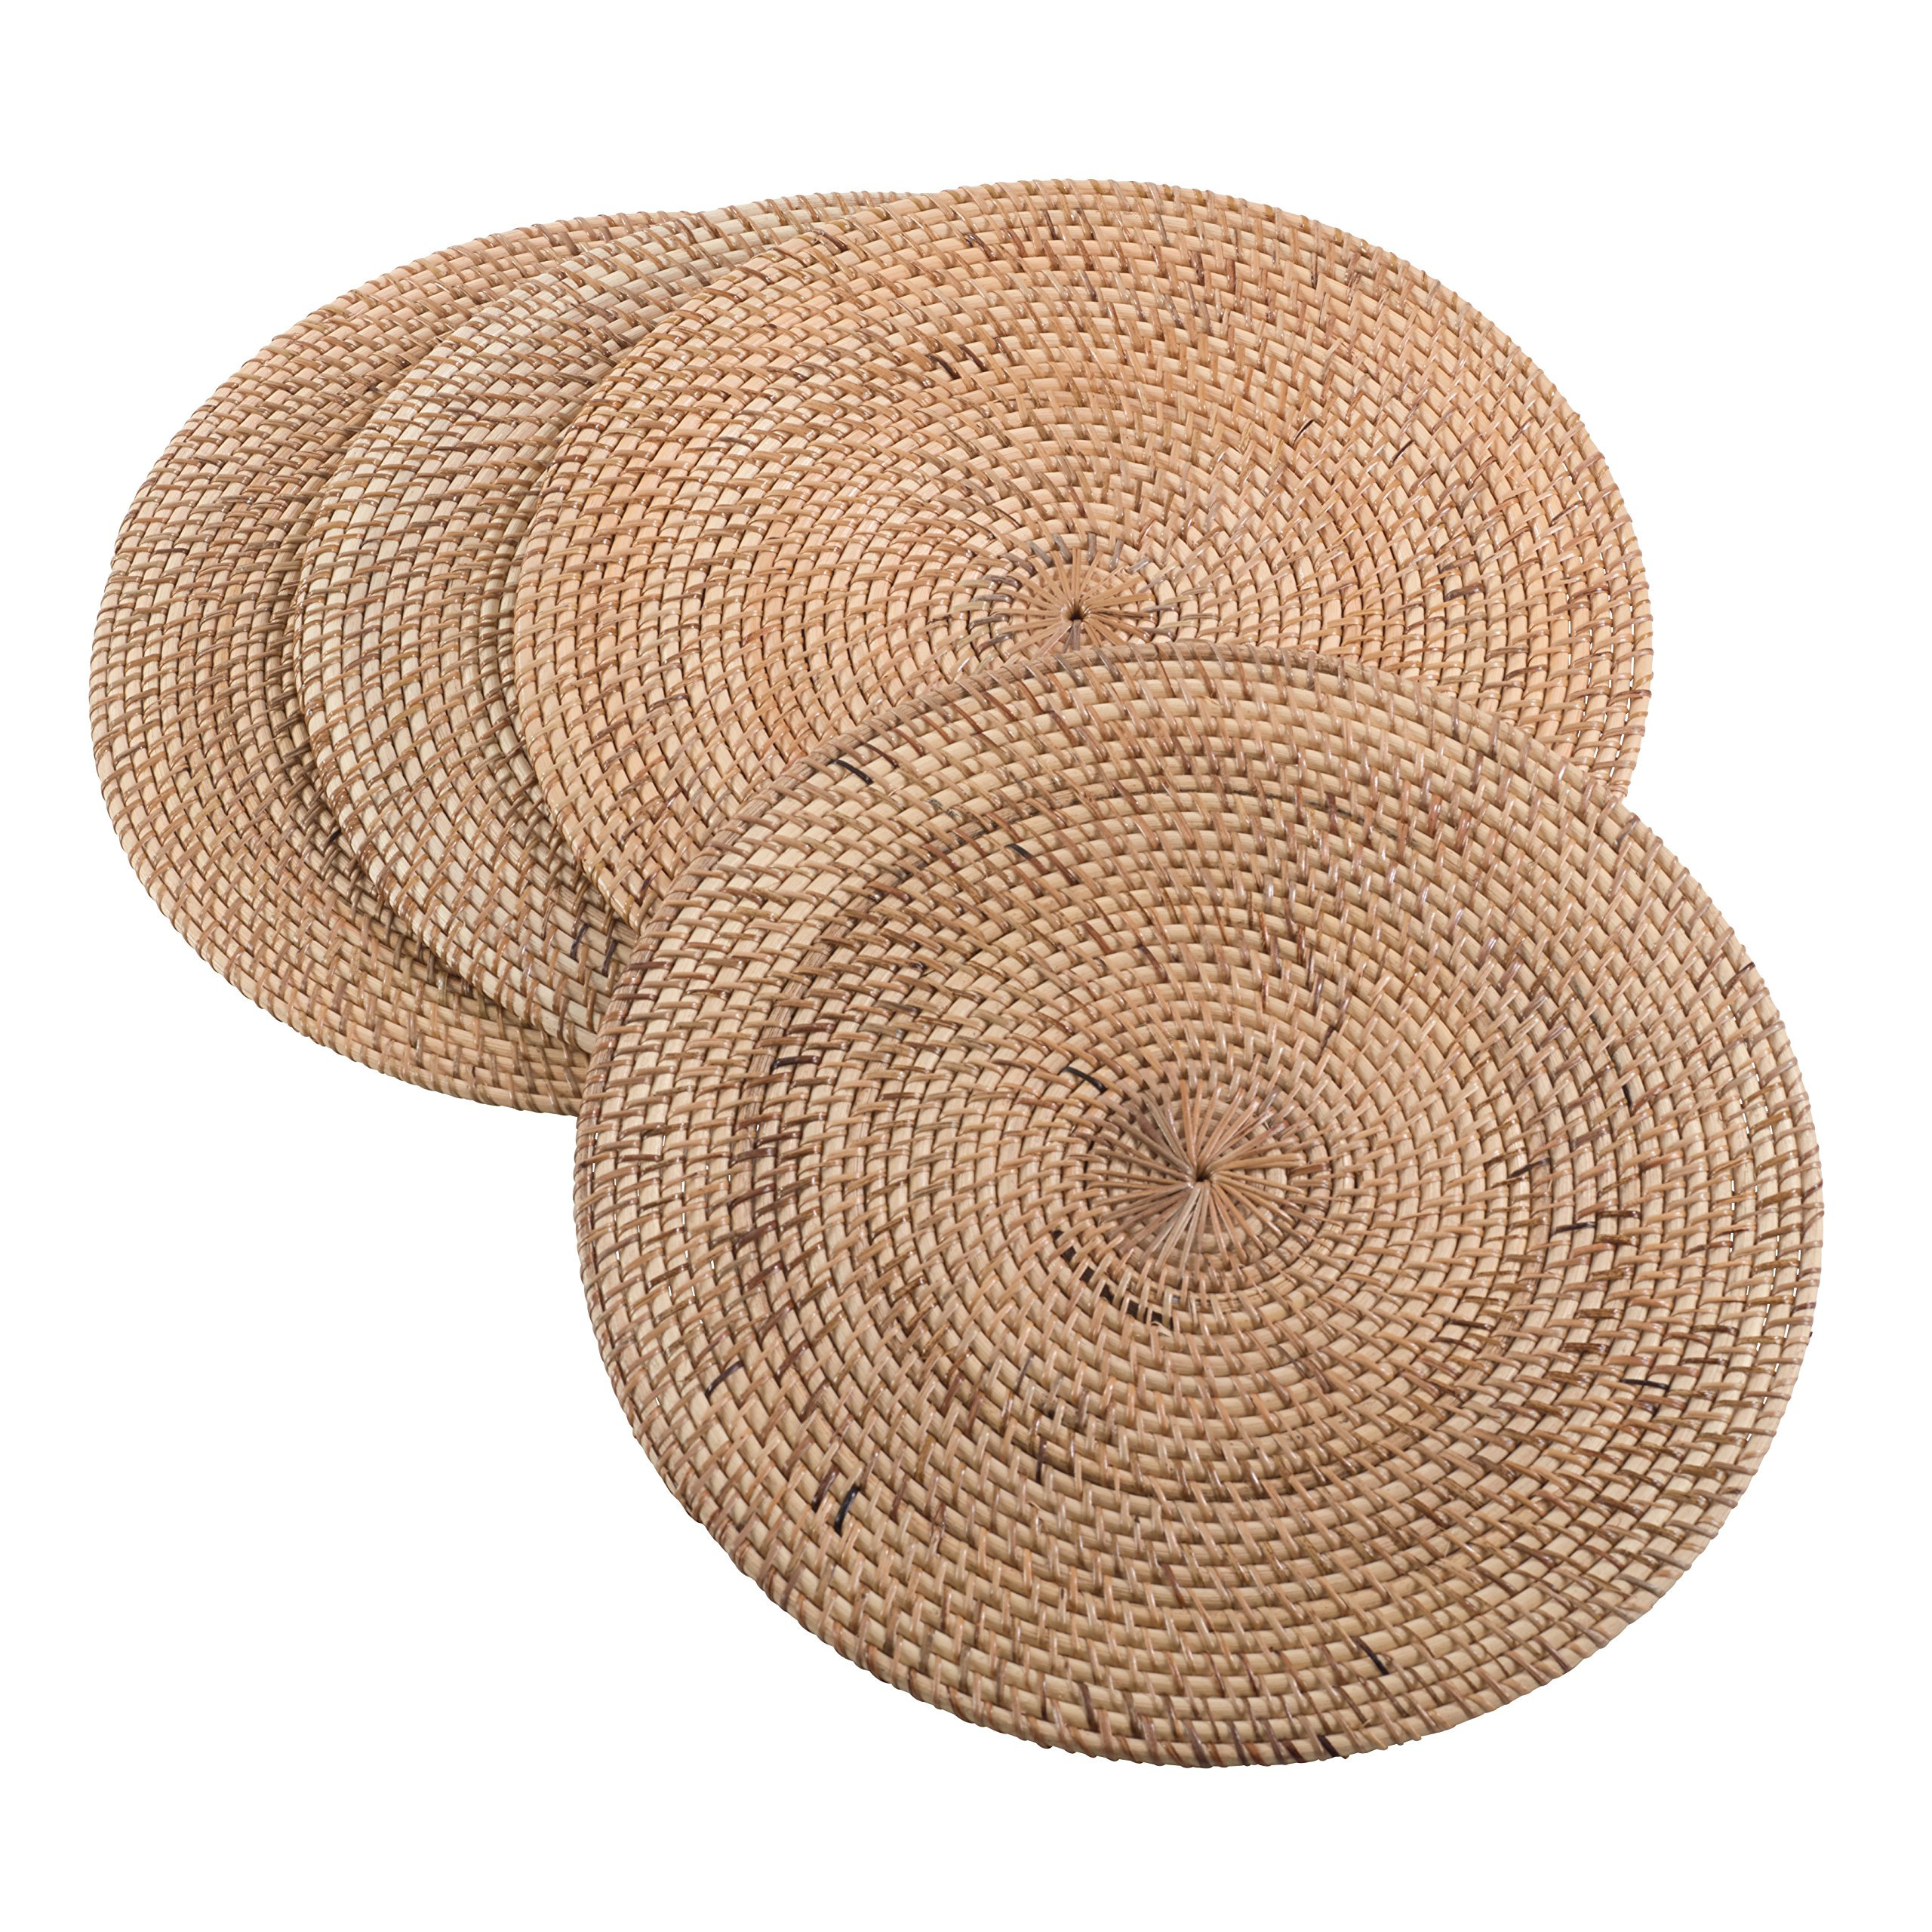 SARO LIFESTYLE Round Hand Woven Rattan Placemat, Set of 4, 15'', Natural